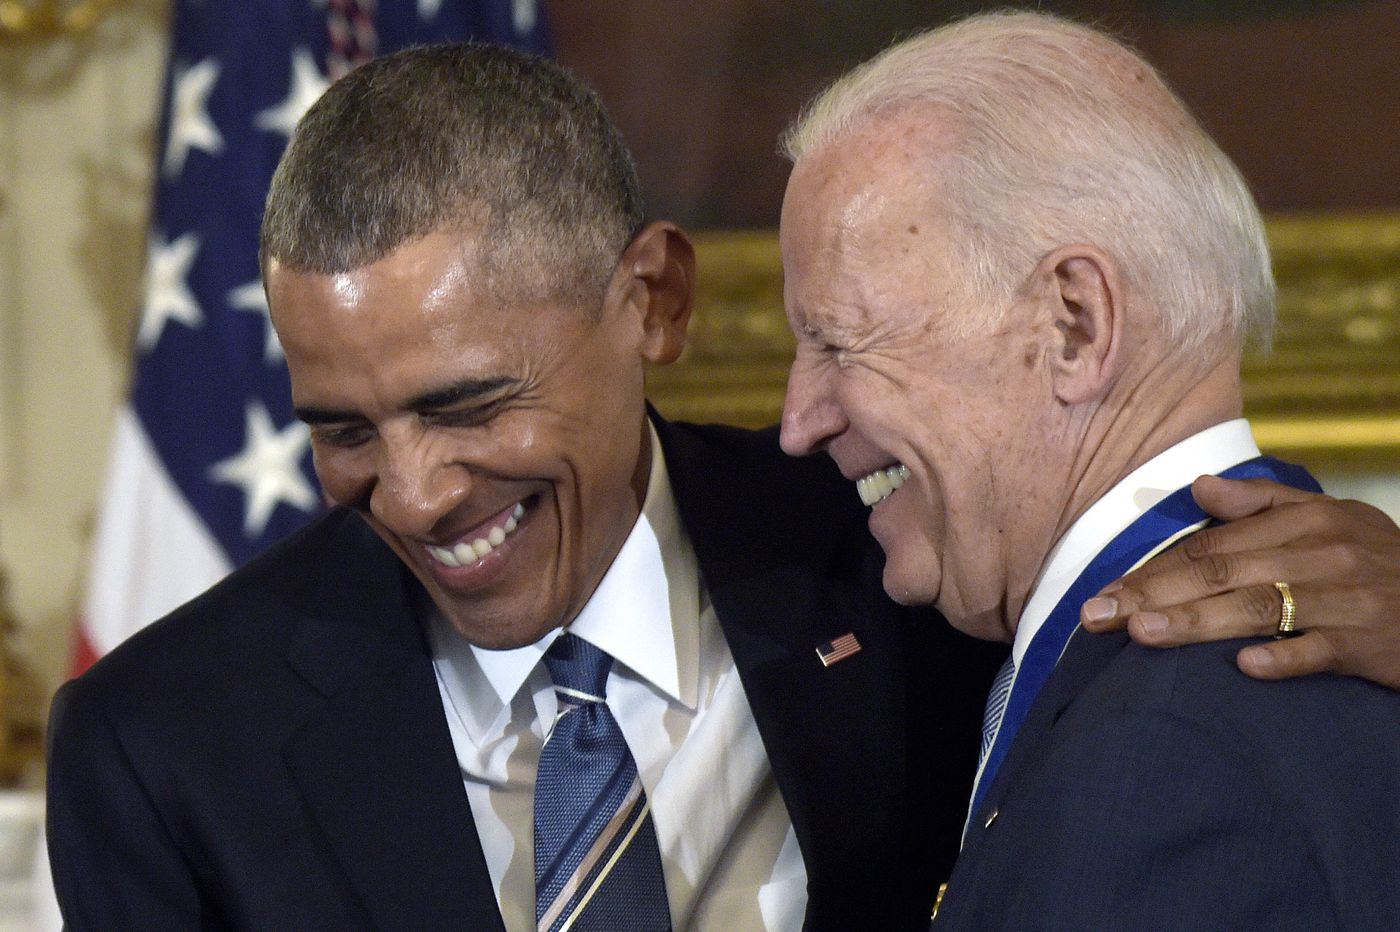 Obama is coming to Philly to campaign for Joe Biden